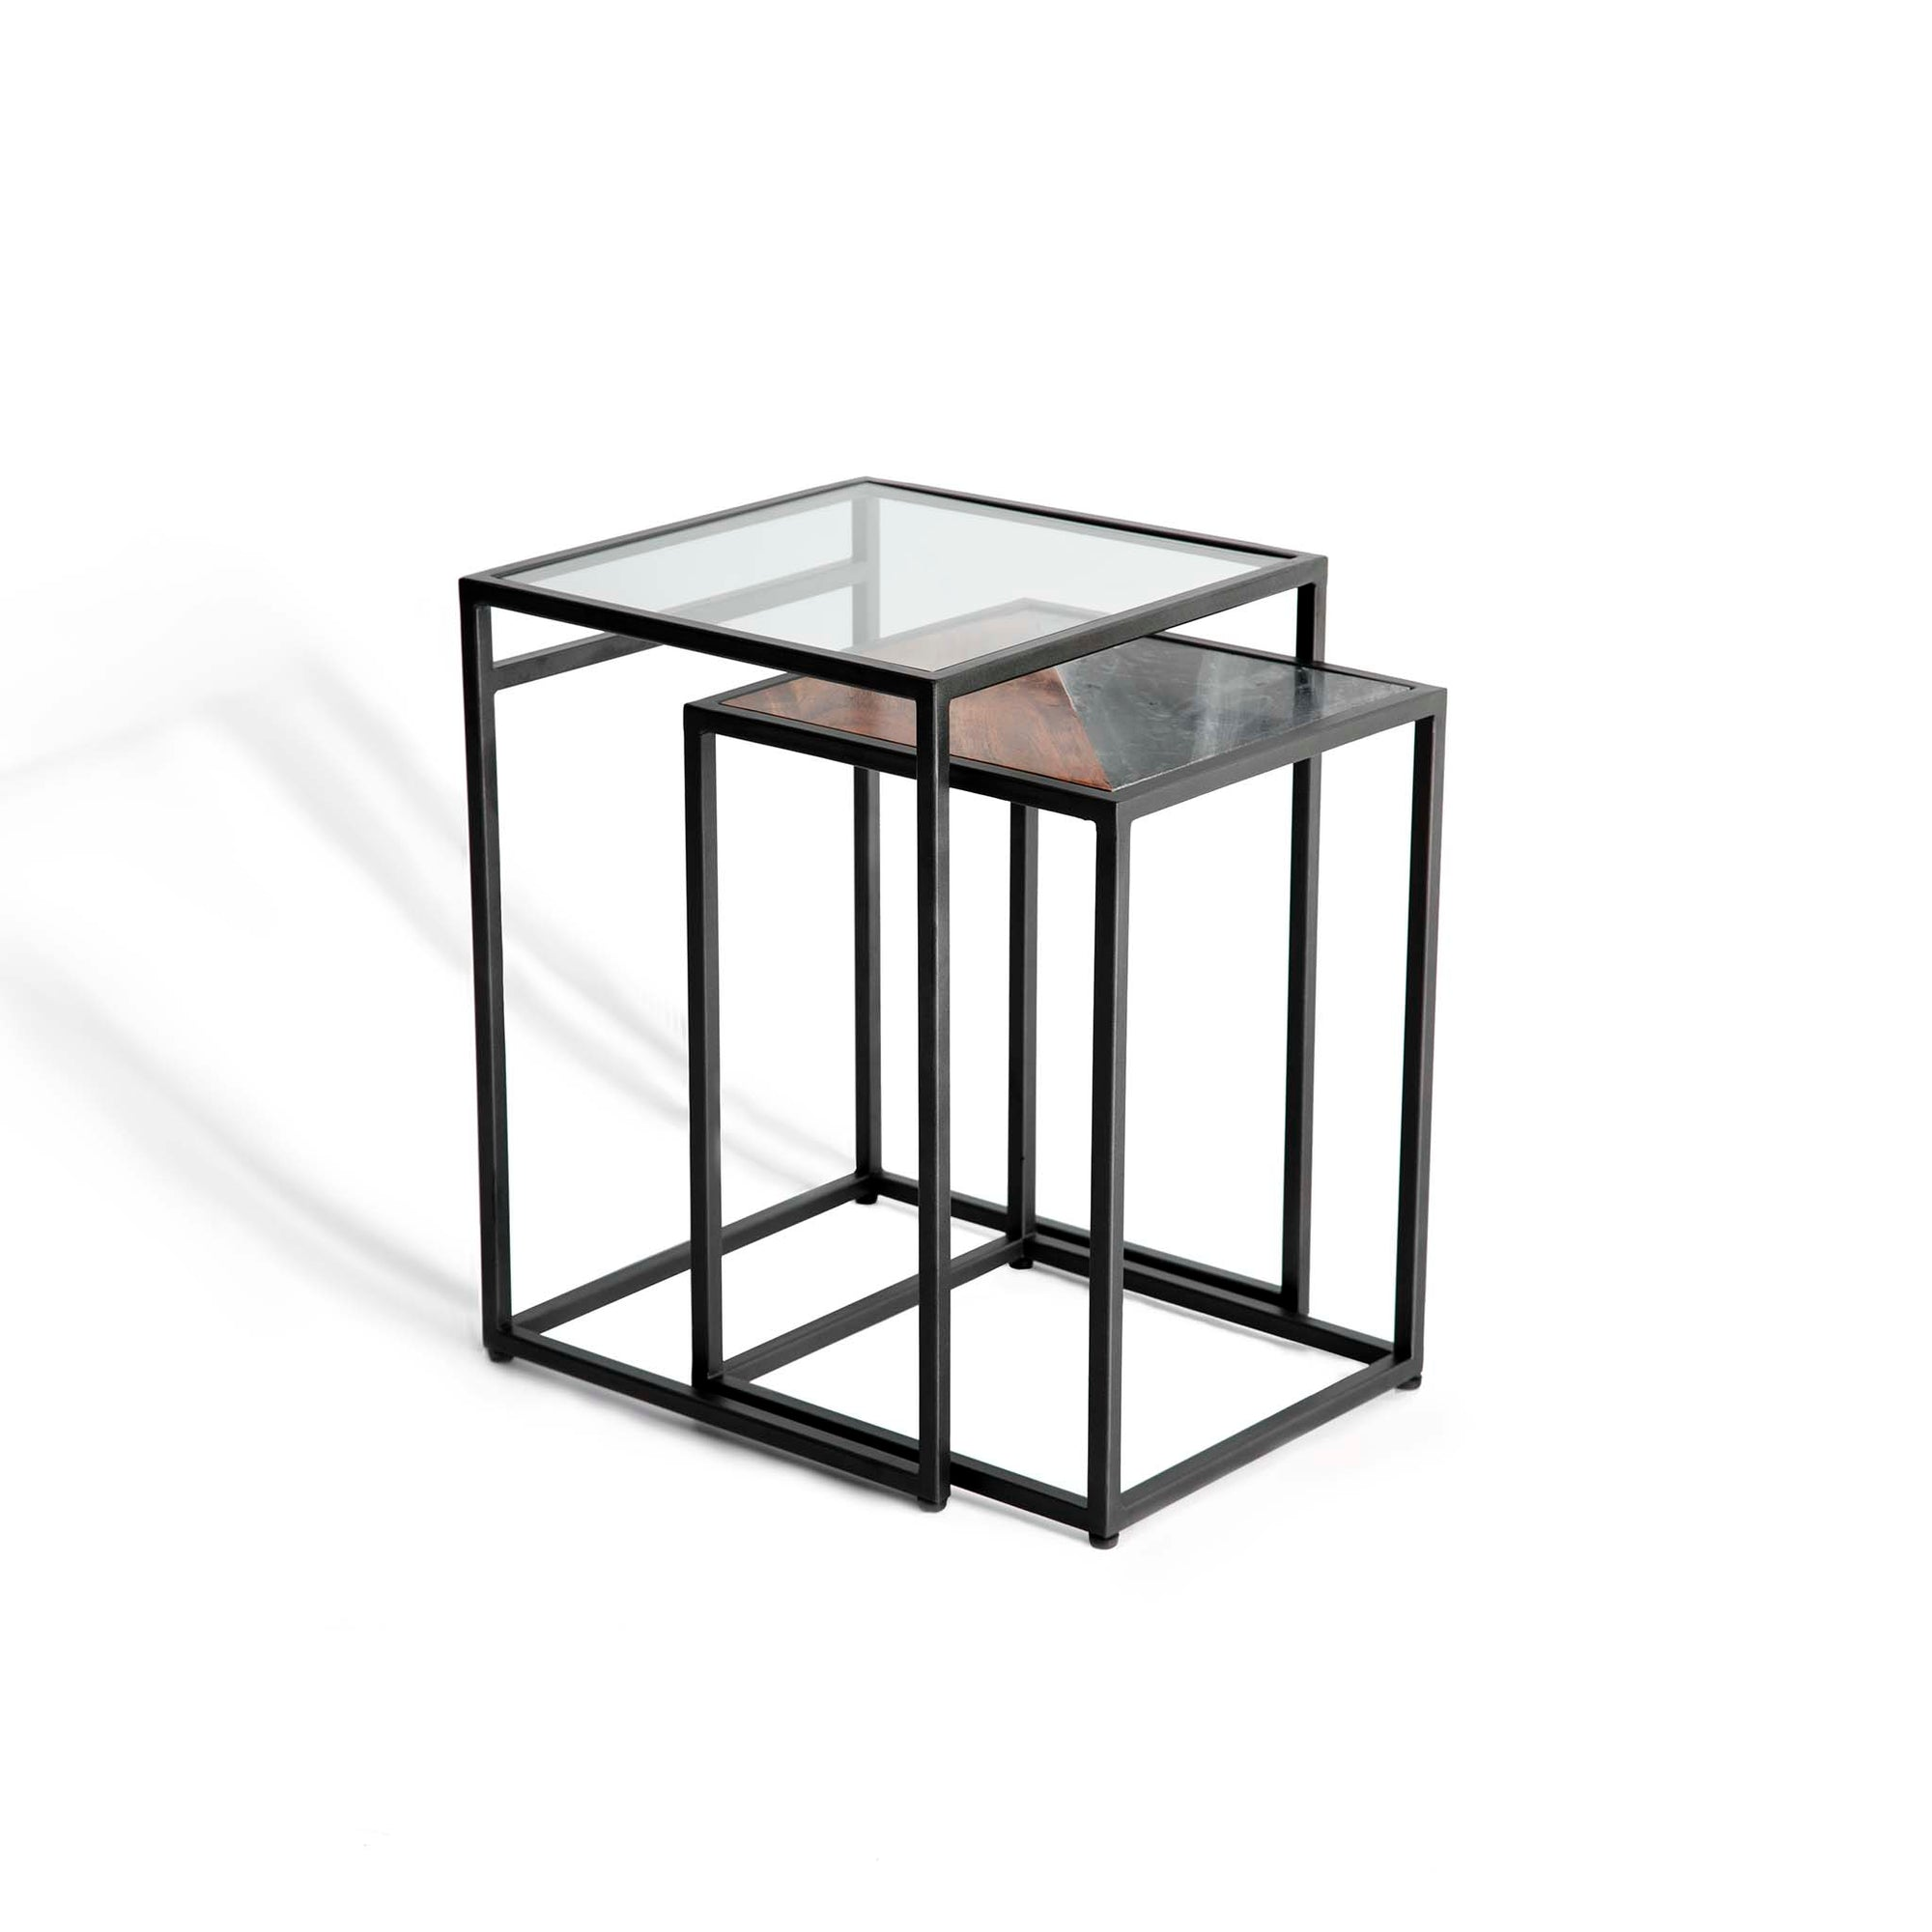 Kandla Grey Marble & Wood Square Nest of Tables with Grey Base by Roseland Furniture